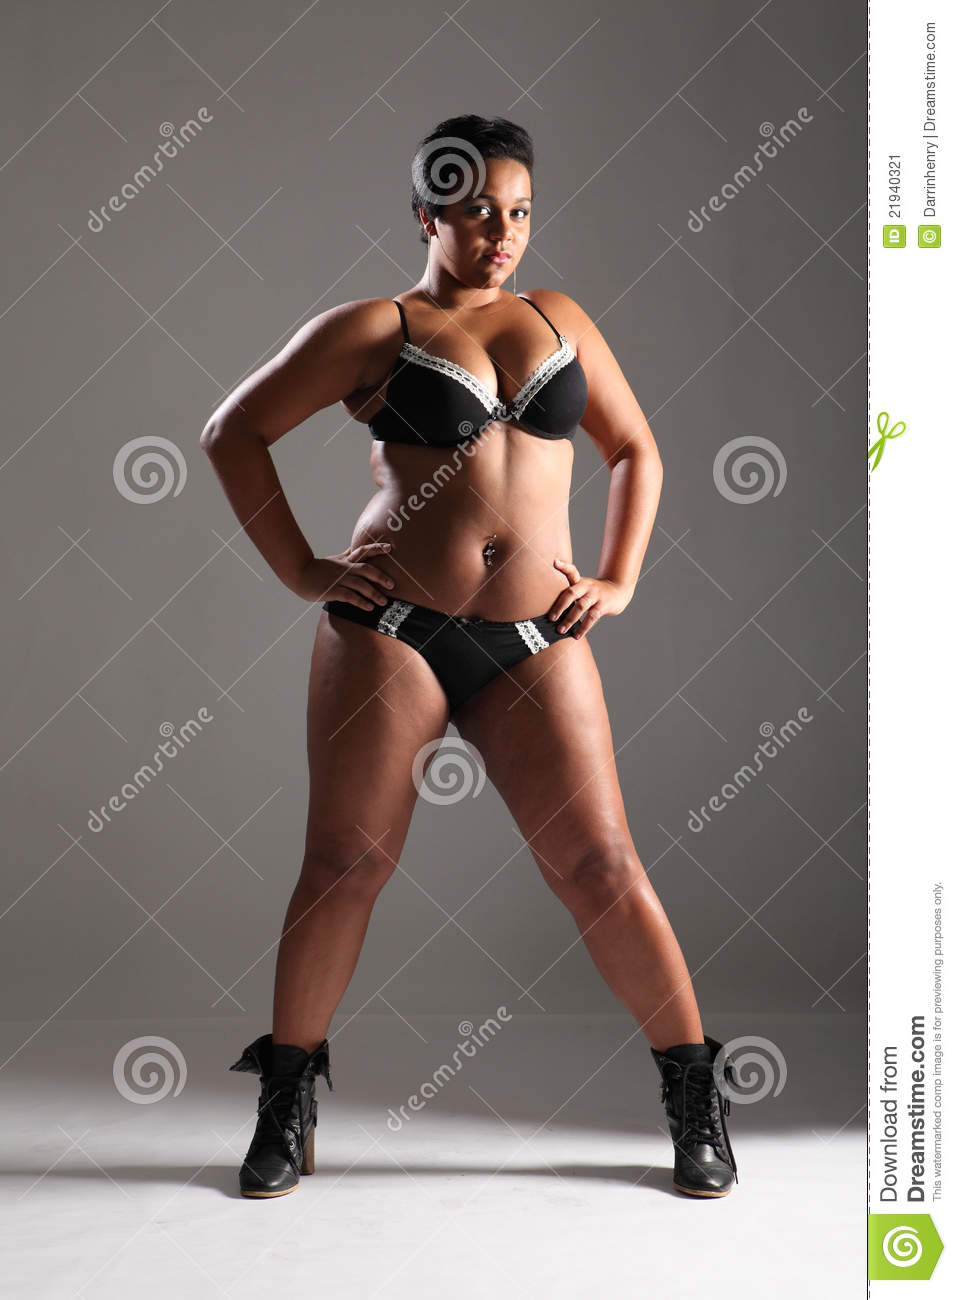 plus size glamour model girl in lingerie stock image - image of